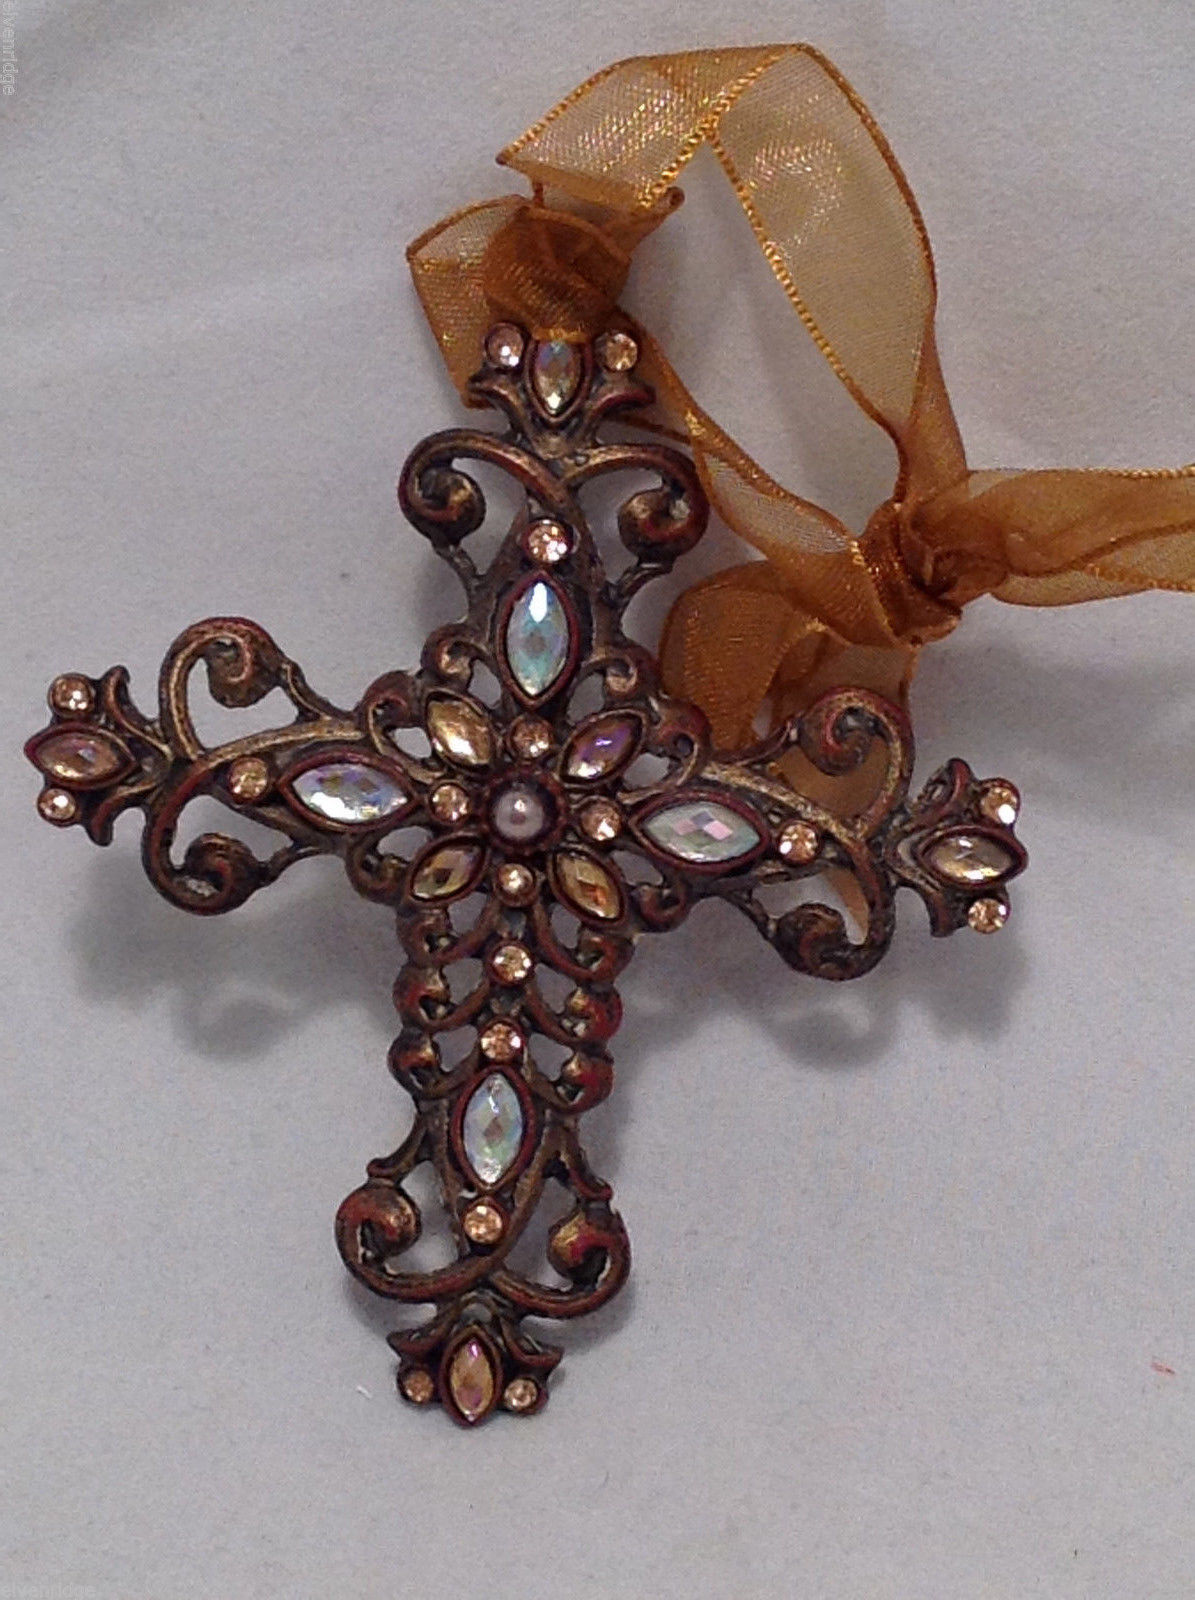 Crucifix Ornament Iridescent White & Yellow Faux Stones in Cross w/ Gold Ribbon